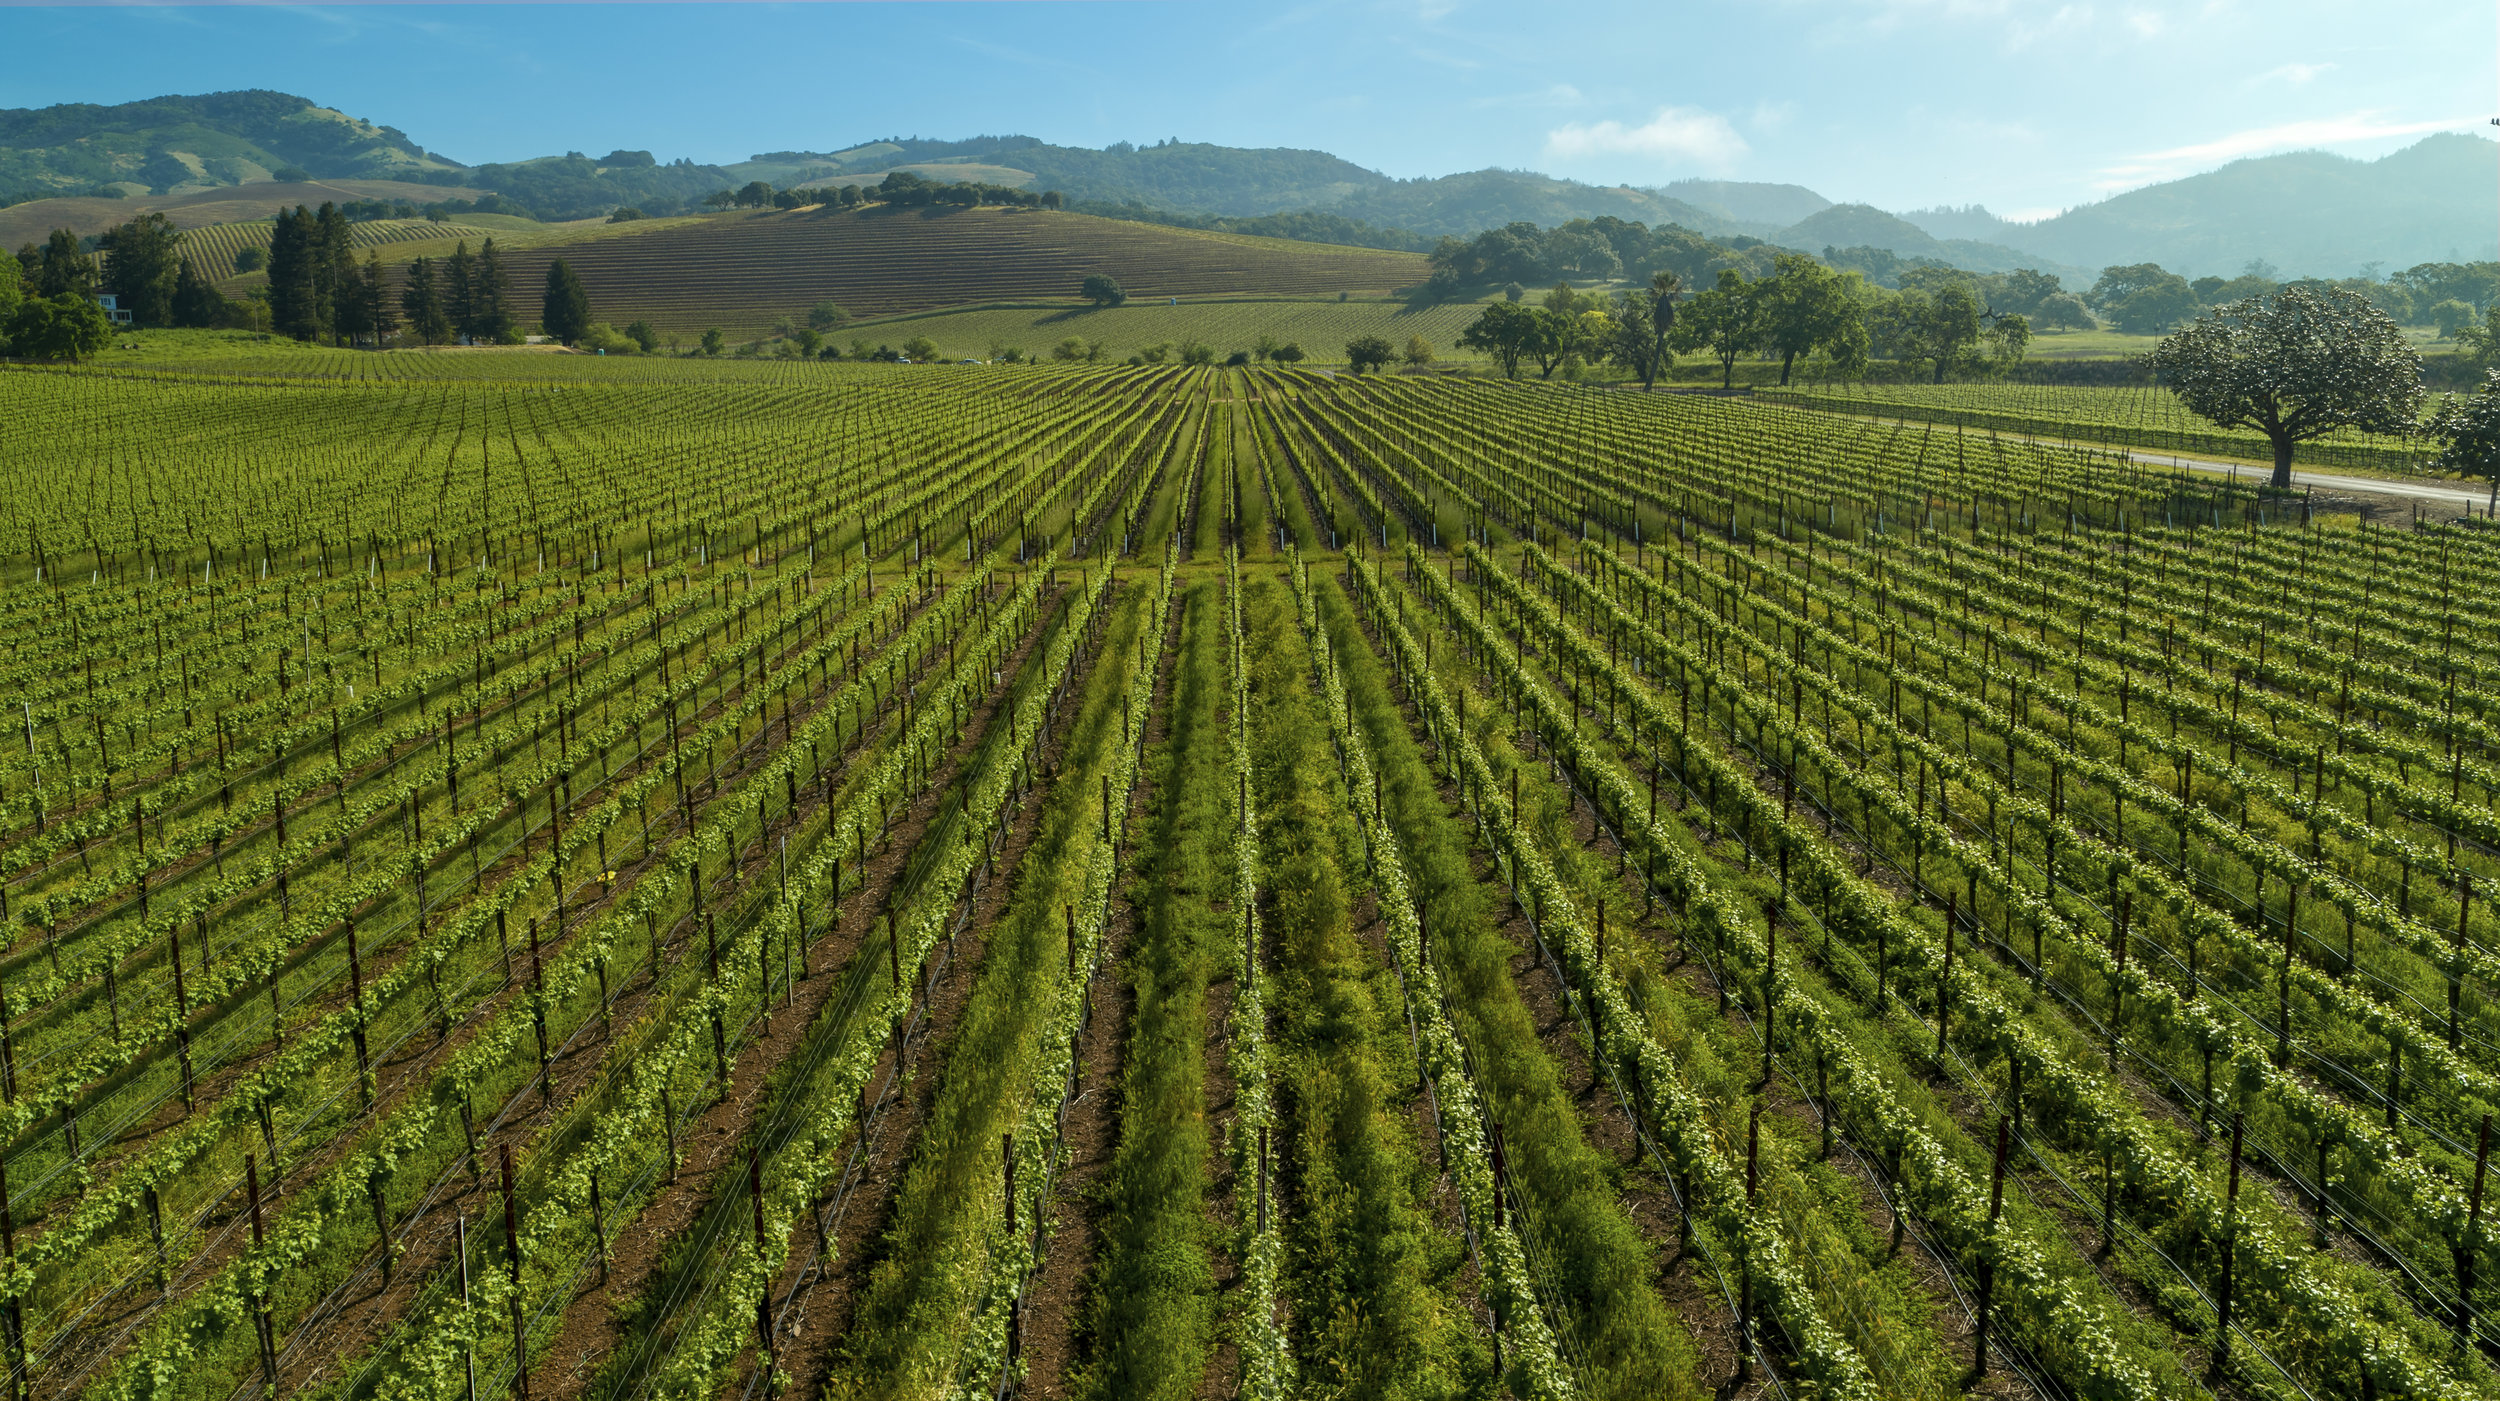 Wine country - Full service aerial and ground-level photography & video production services